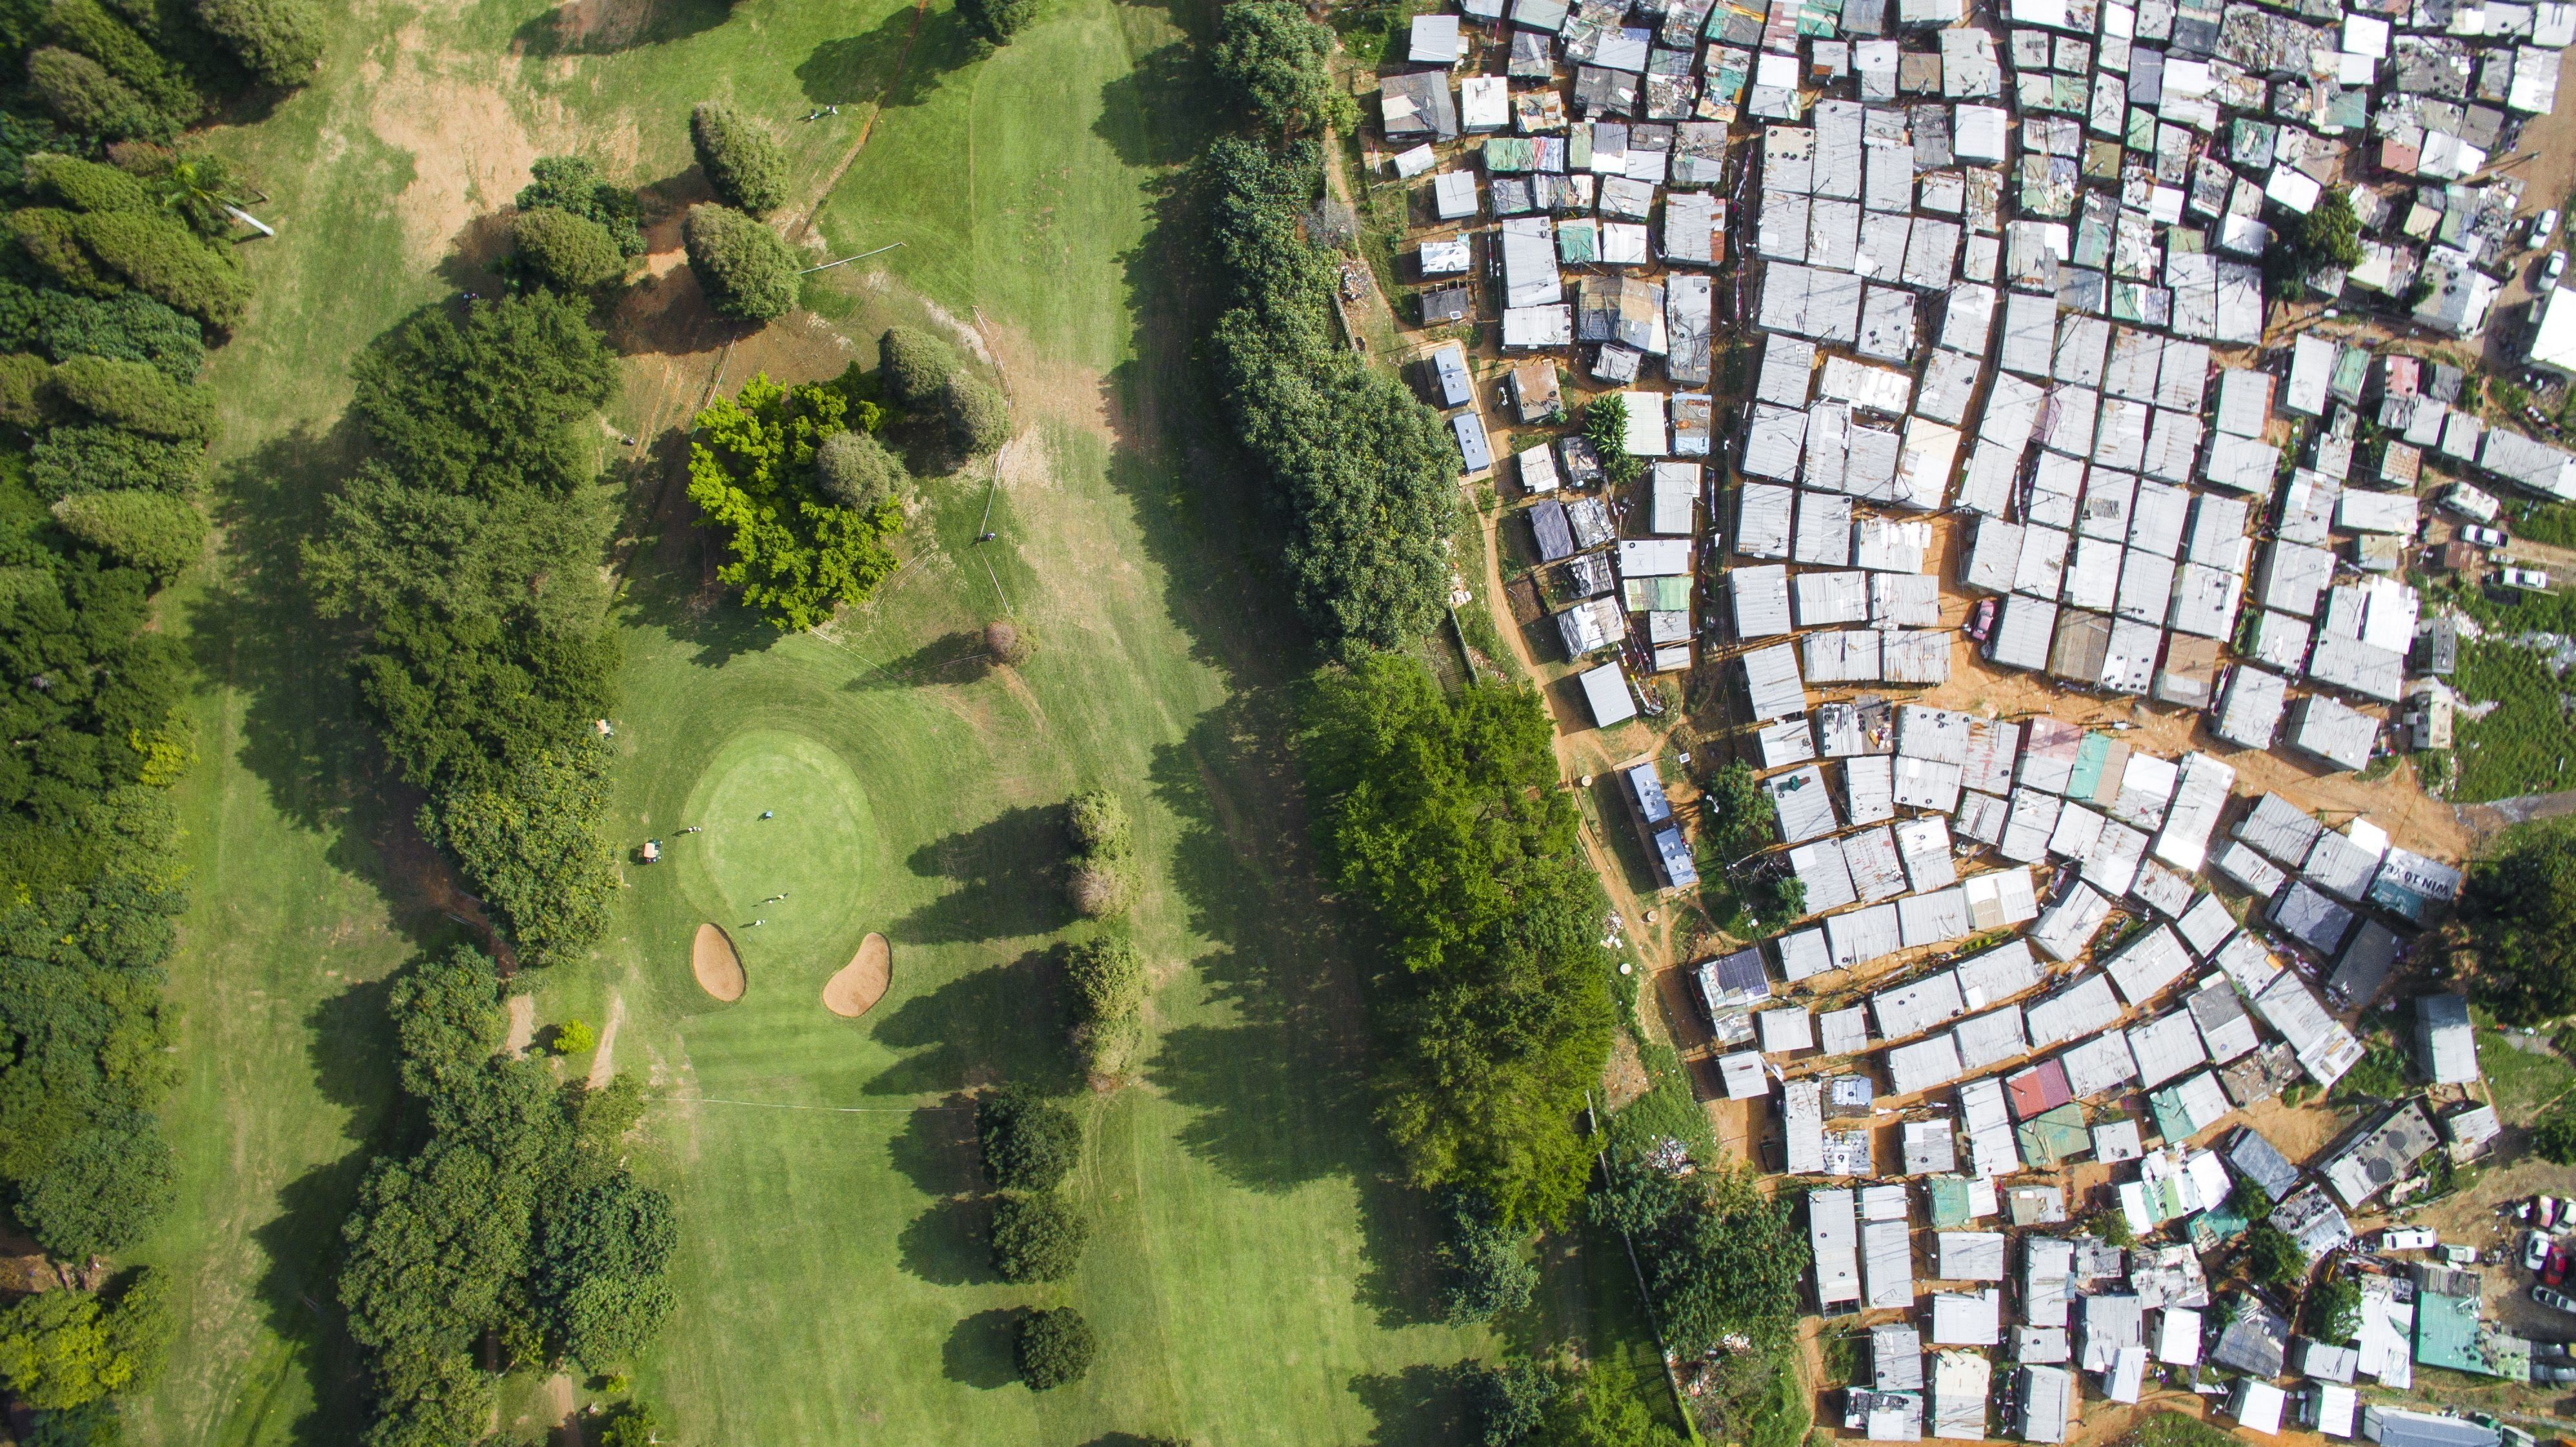 Papwa Sewgolum Golf Course is located along the lush green slopes of the Umgeni River in Durban. Almost...